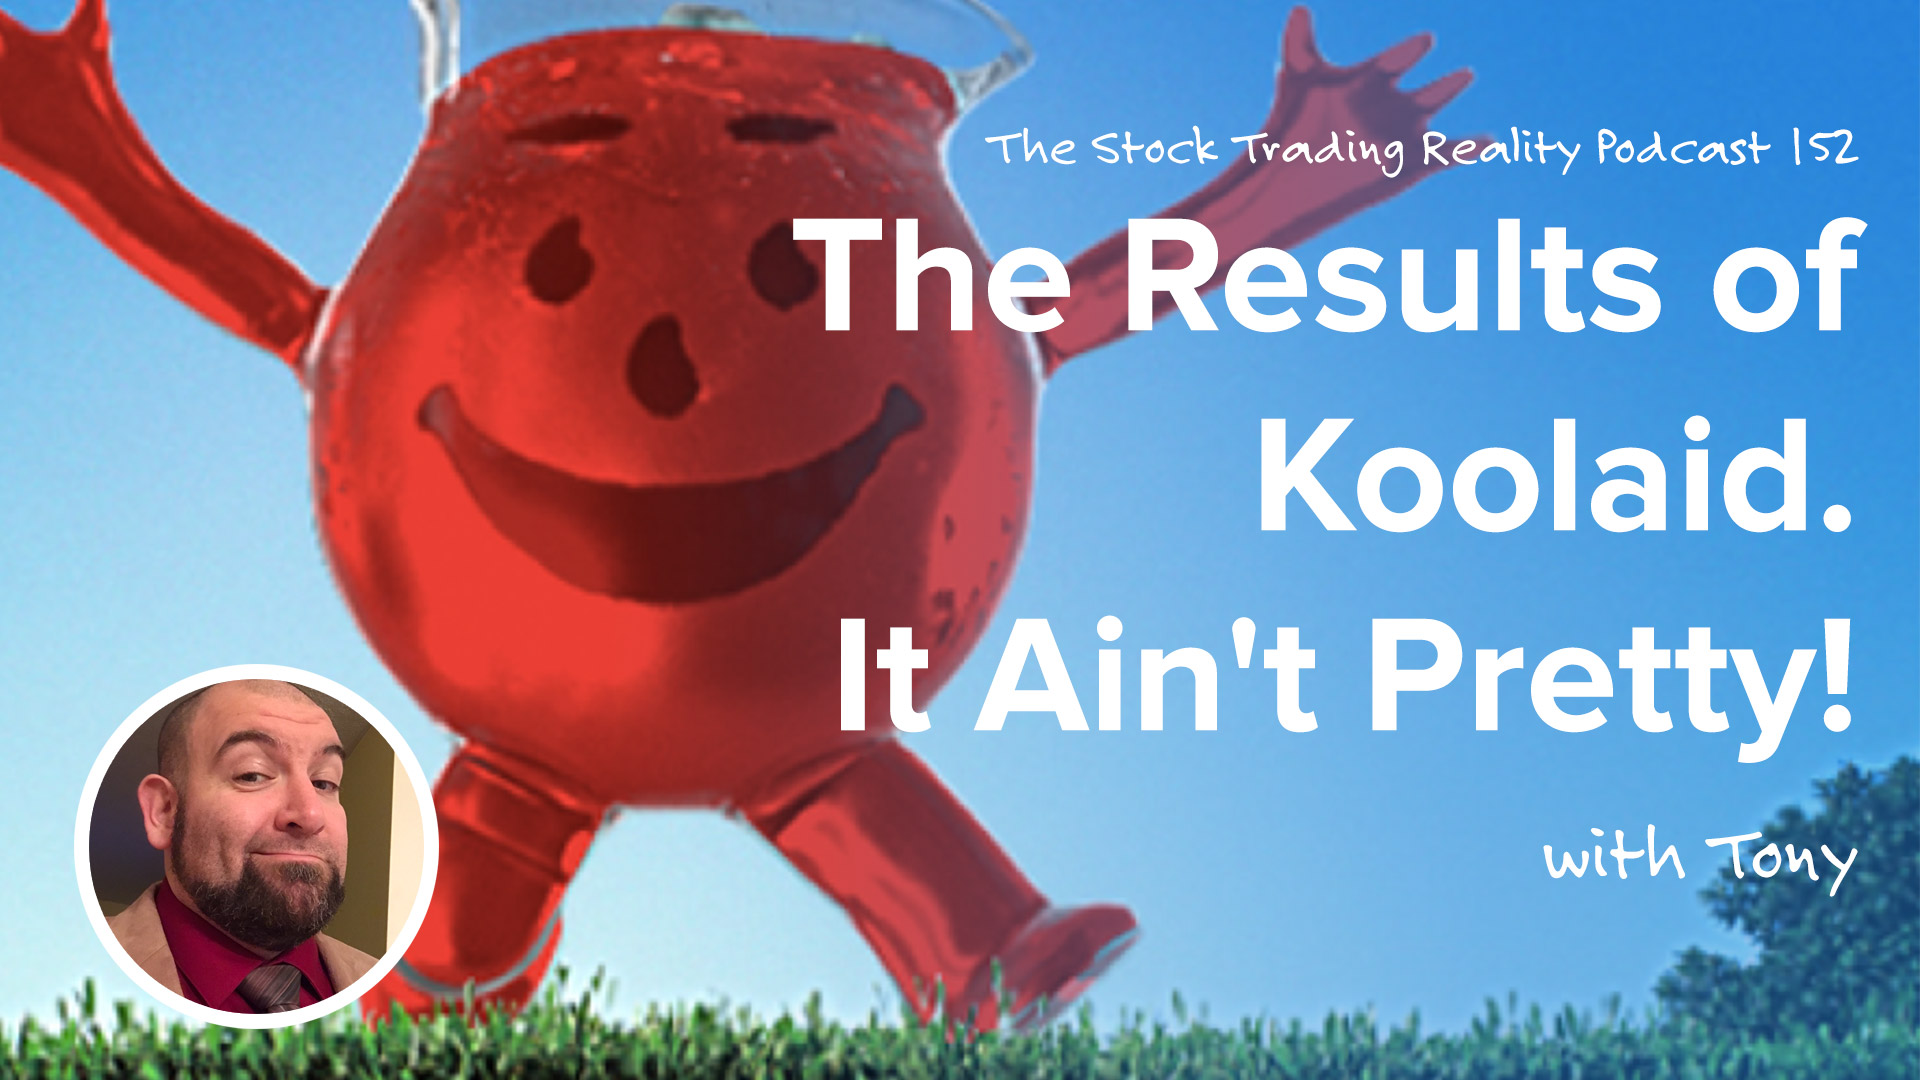 STR 152: The Results of Koolaid. It Ain't Pretty!